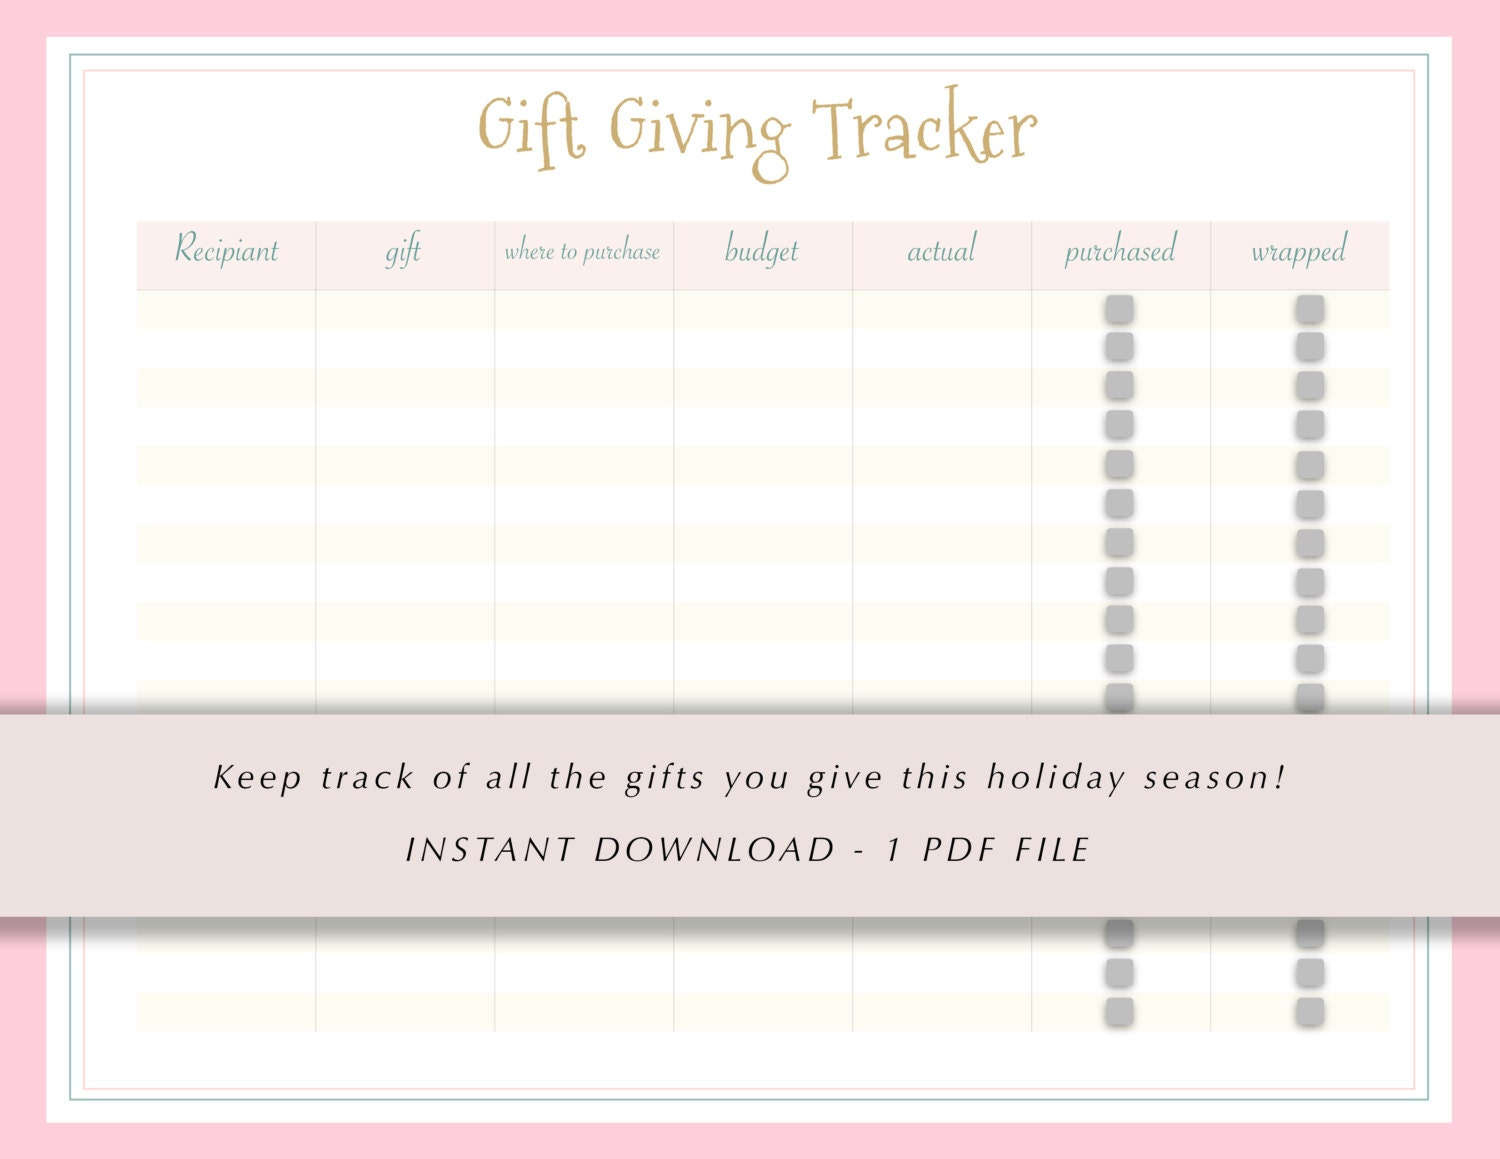 Gift Giving Tracker Christmas Gift List Gifts To Give Etsy